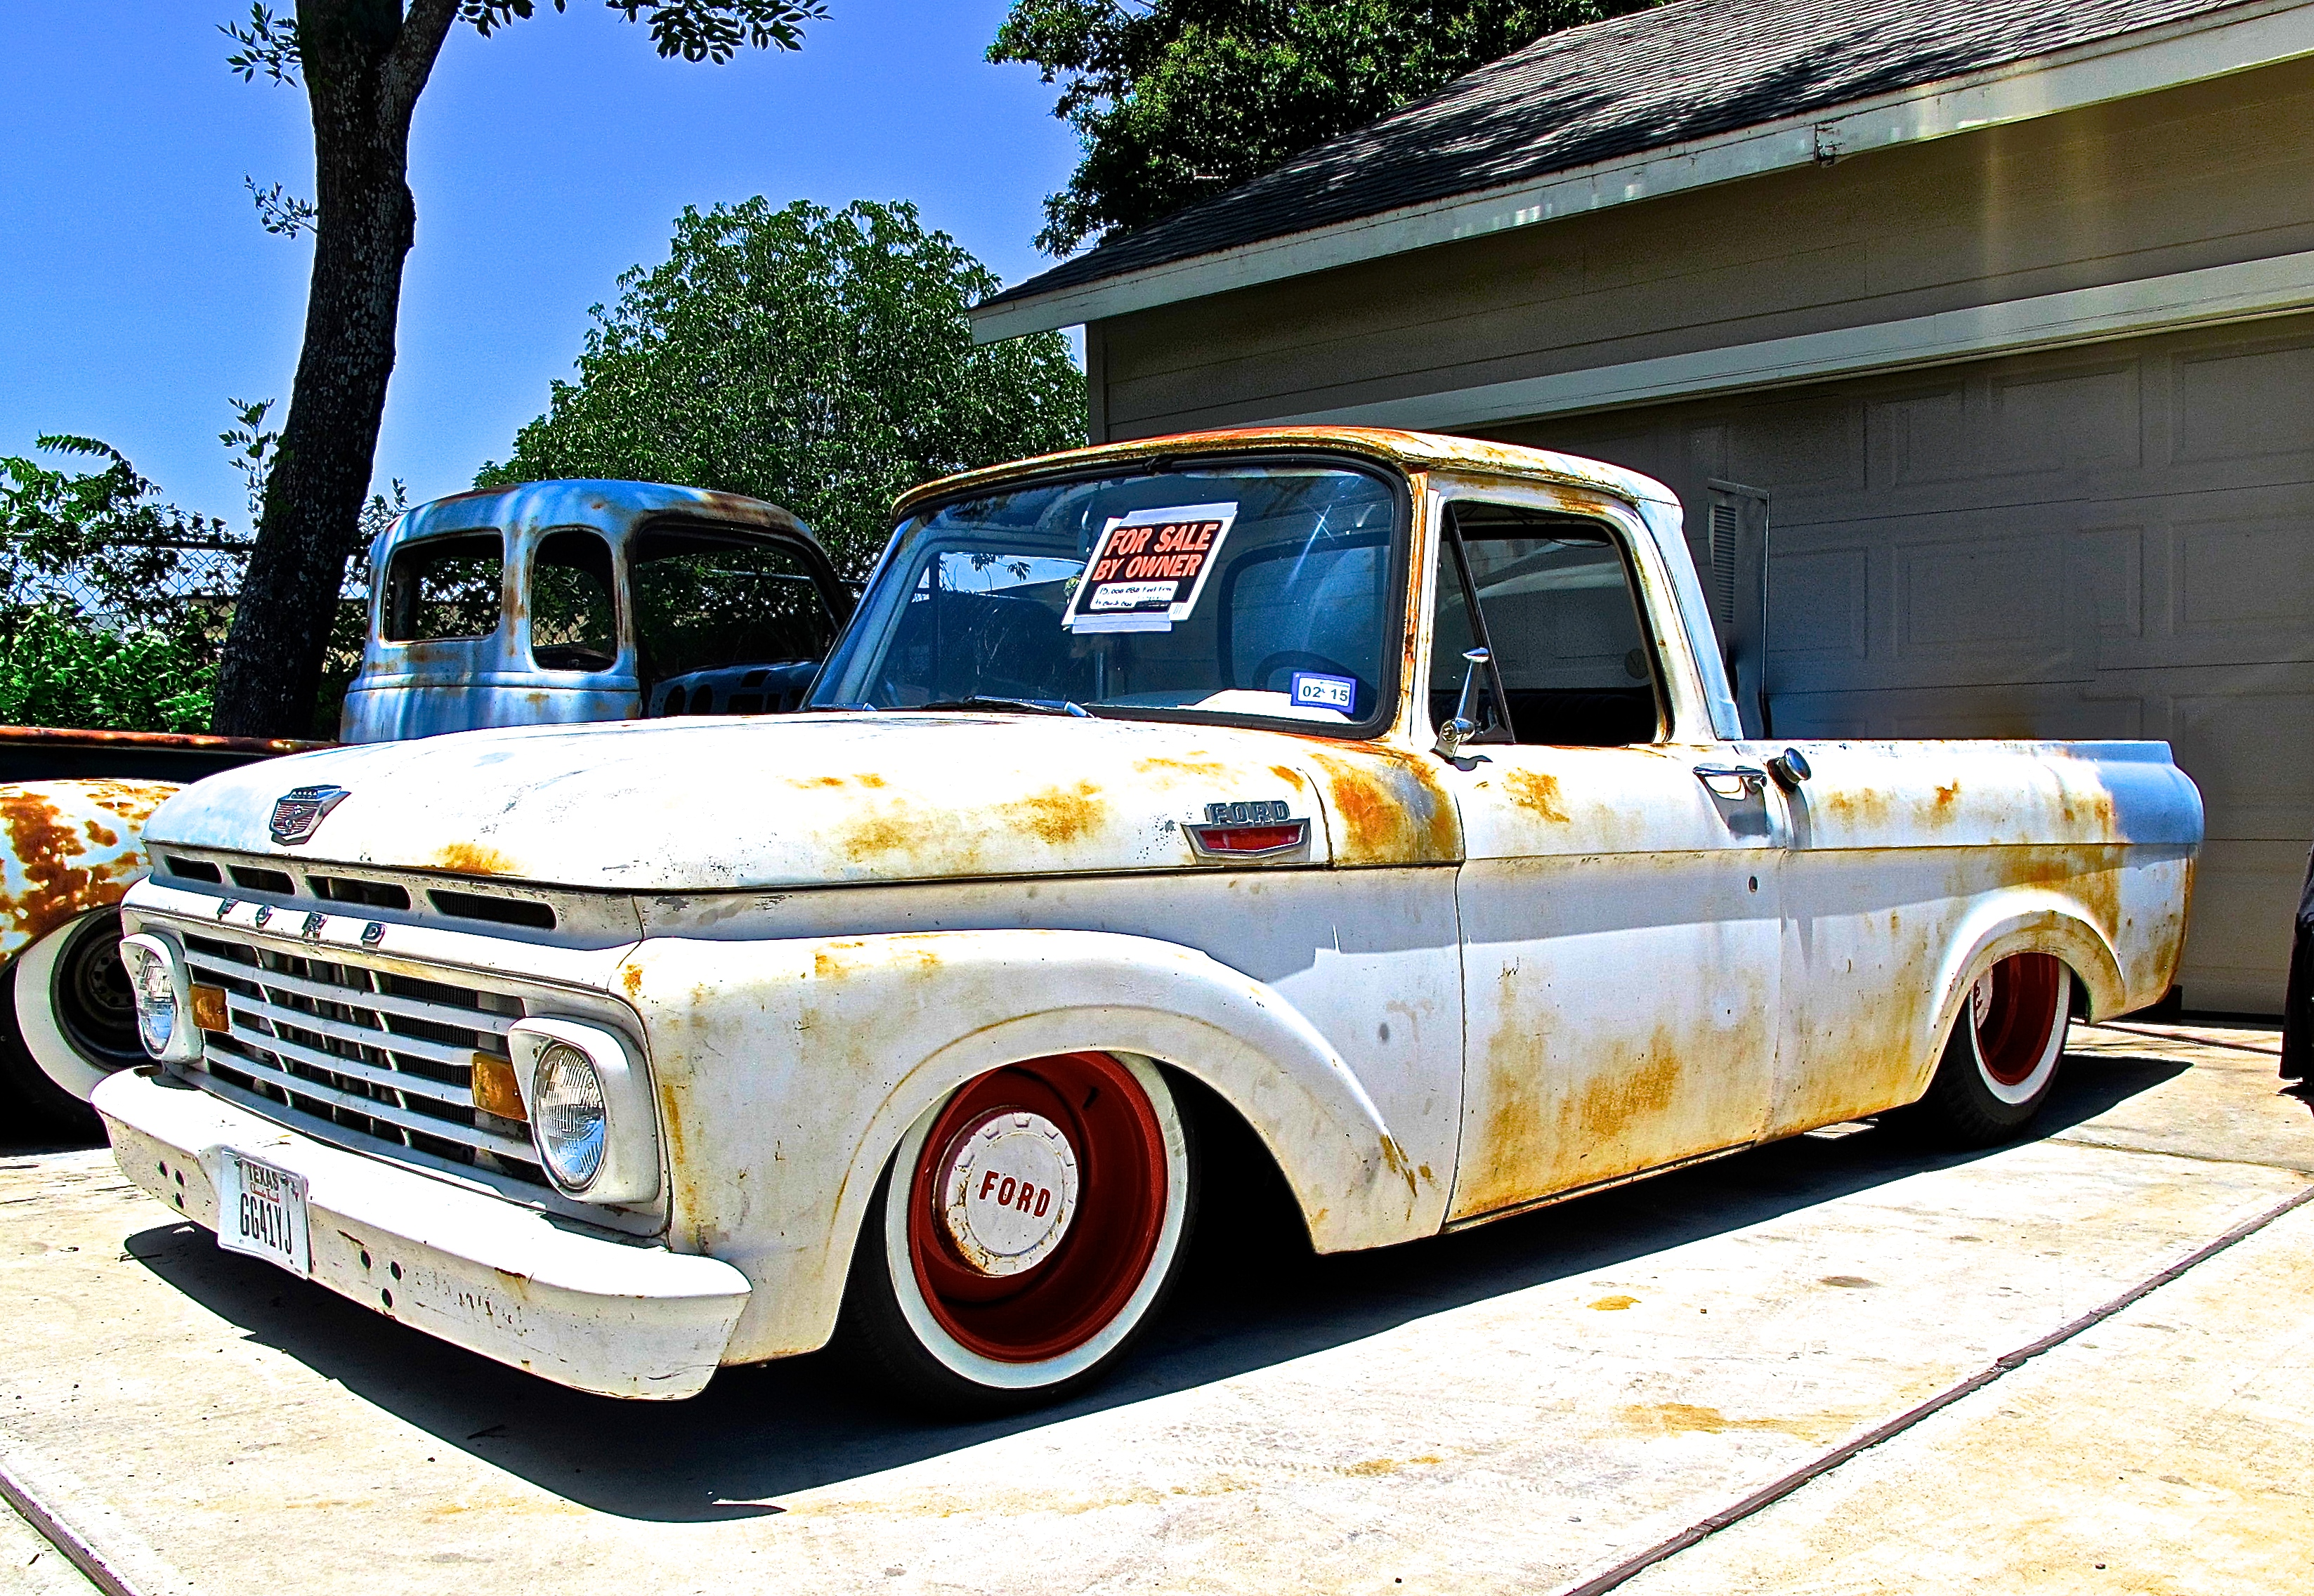 Cars For Sale Austin Tx >> Custom 1963 Ford F100 Pickup 4 Sale in Pflugerville | ATX Car Pictures | Real Pics from Austin ...